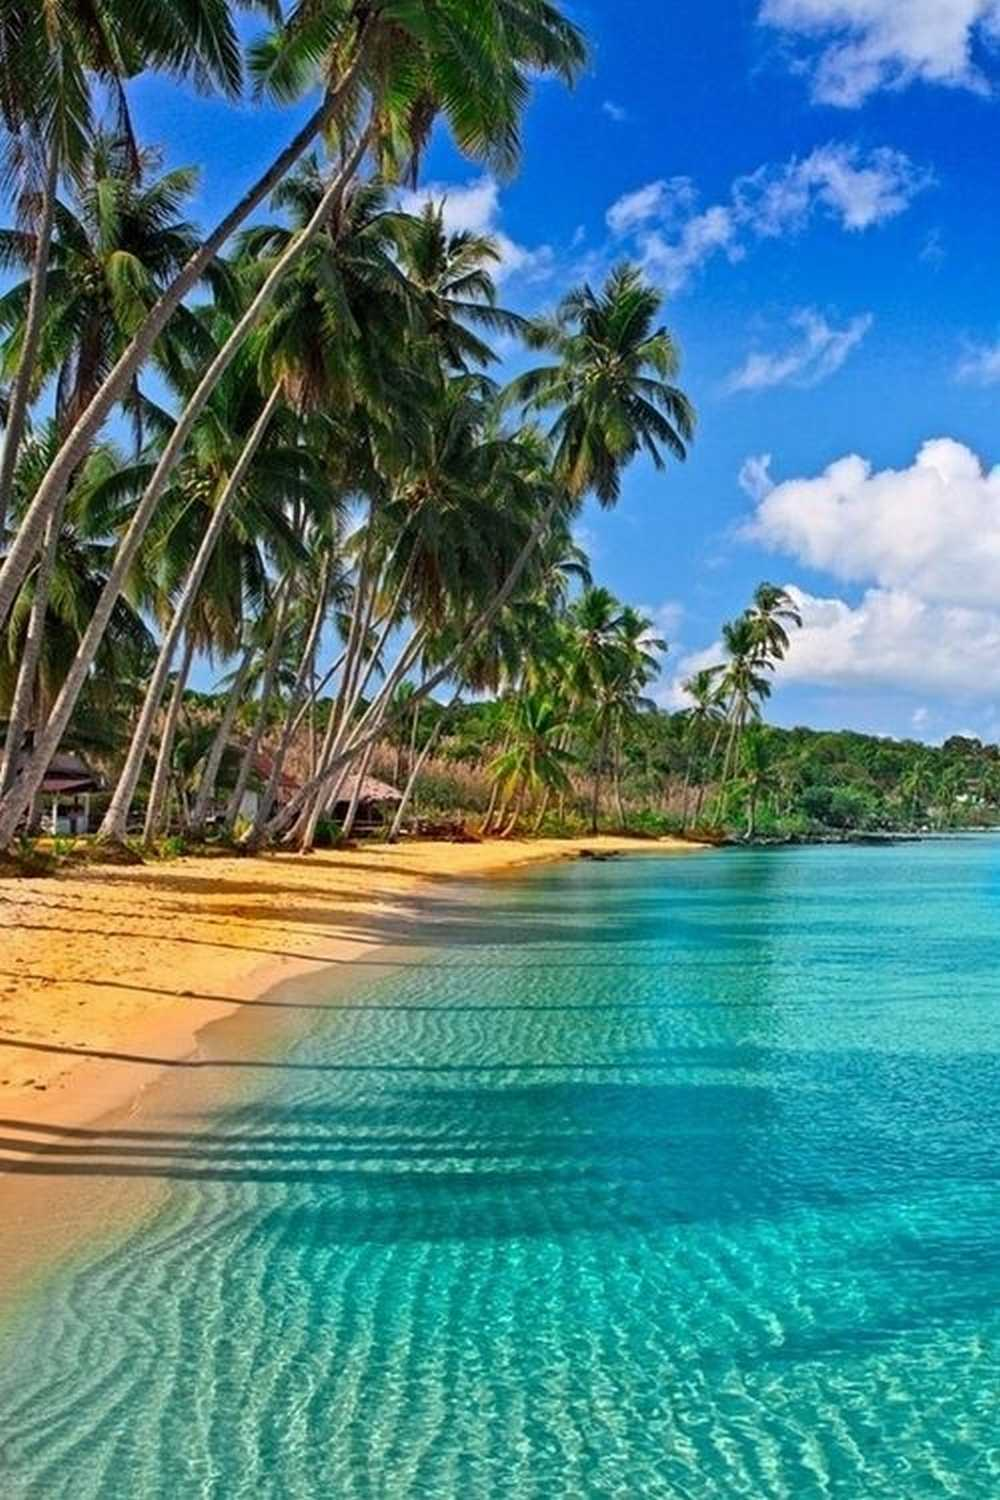 The Nicest Pictures: Caribbean Beach